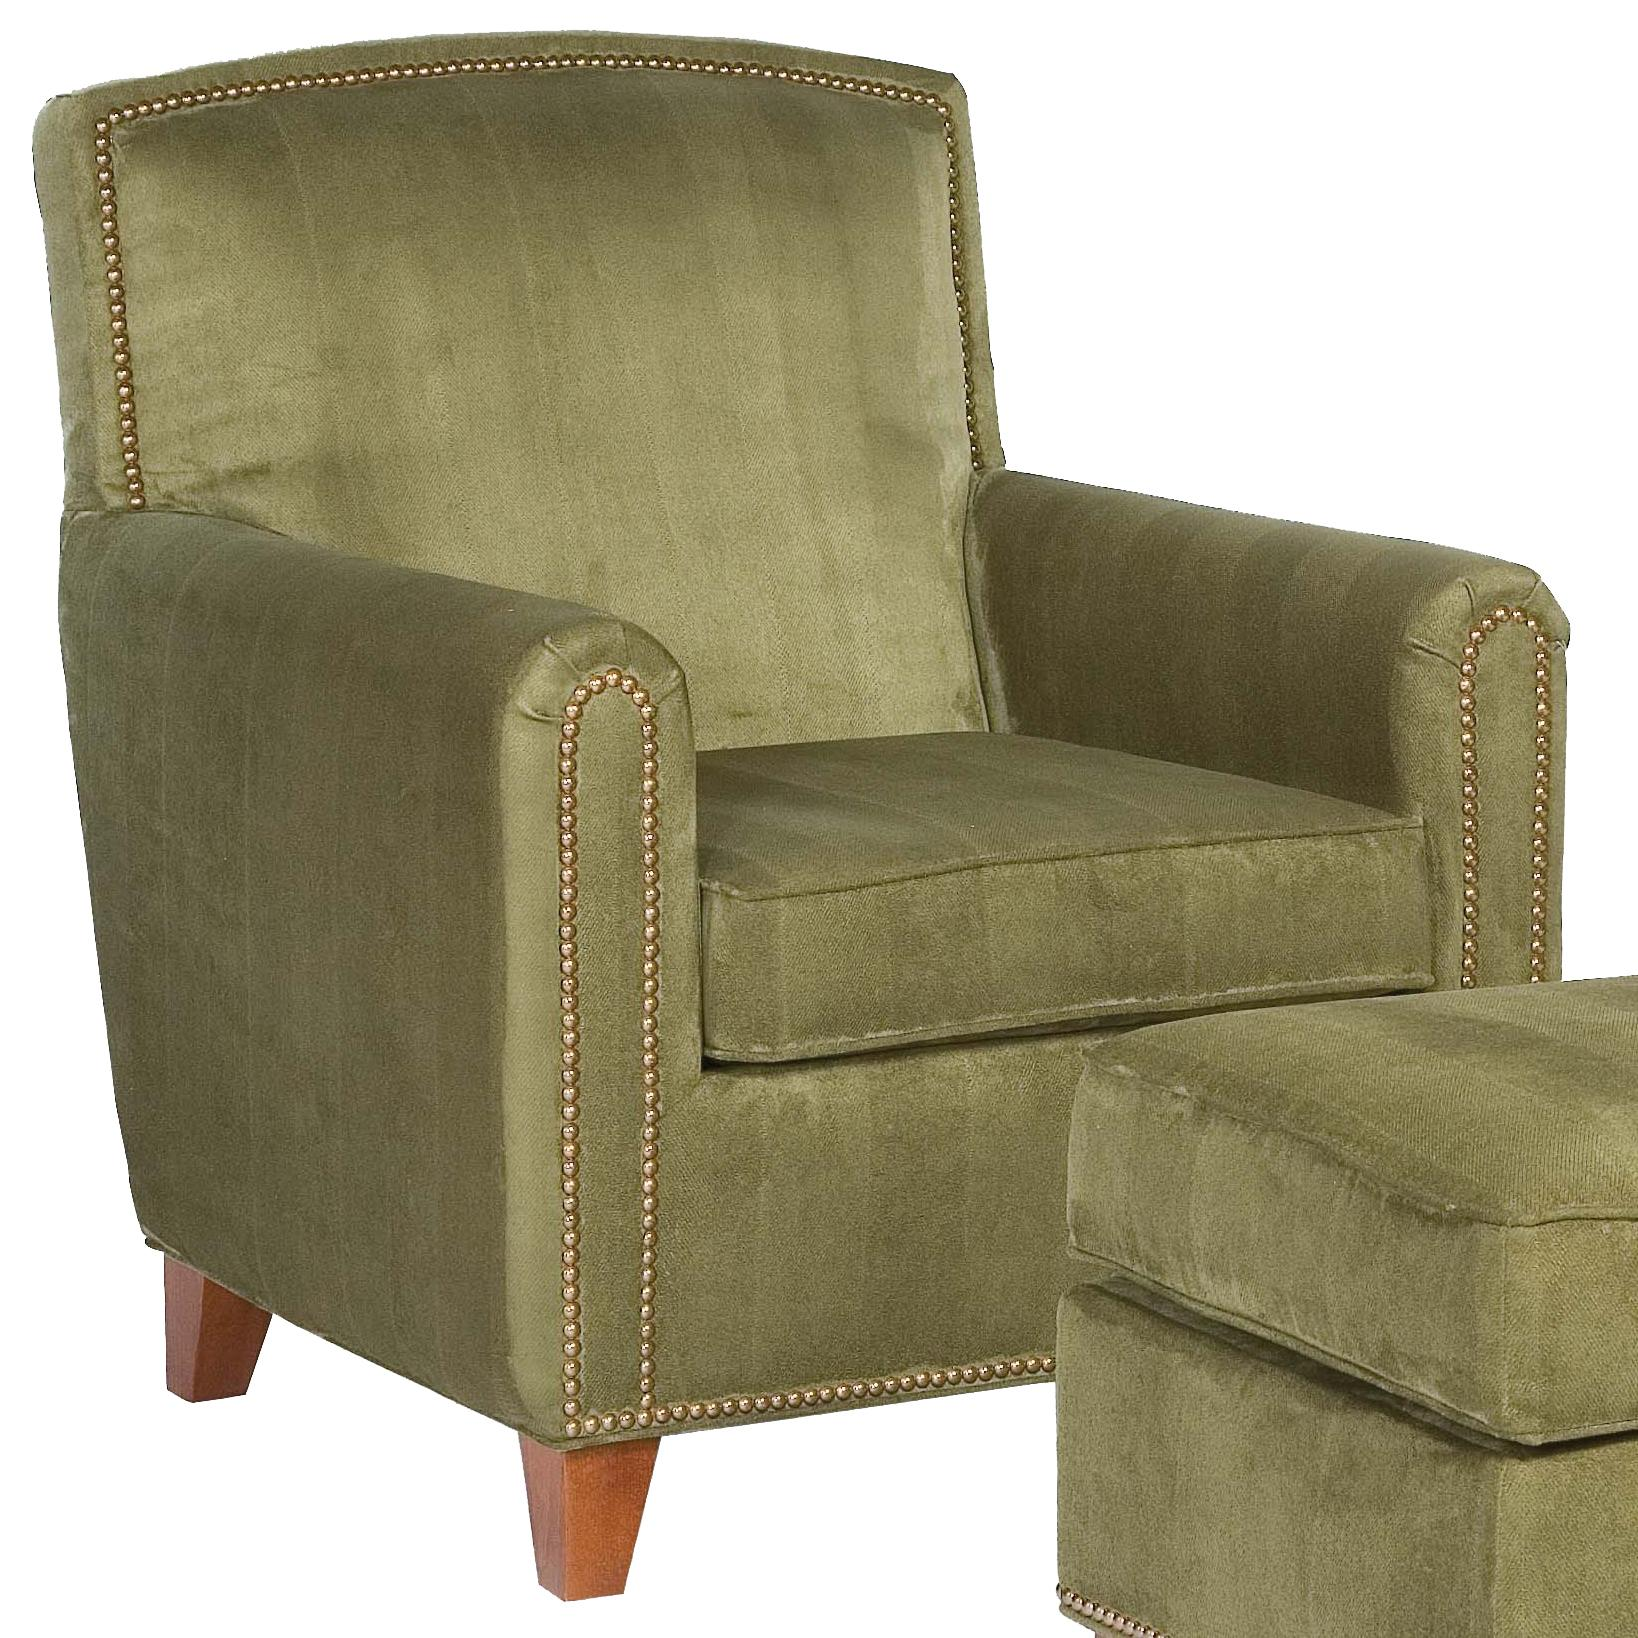 Fairfield Chairs Plush Upholstered Chair - Item Number: 6026-01